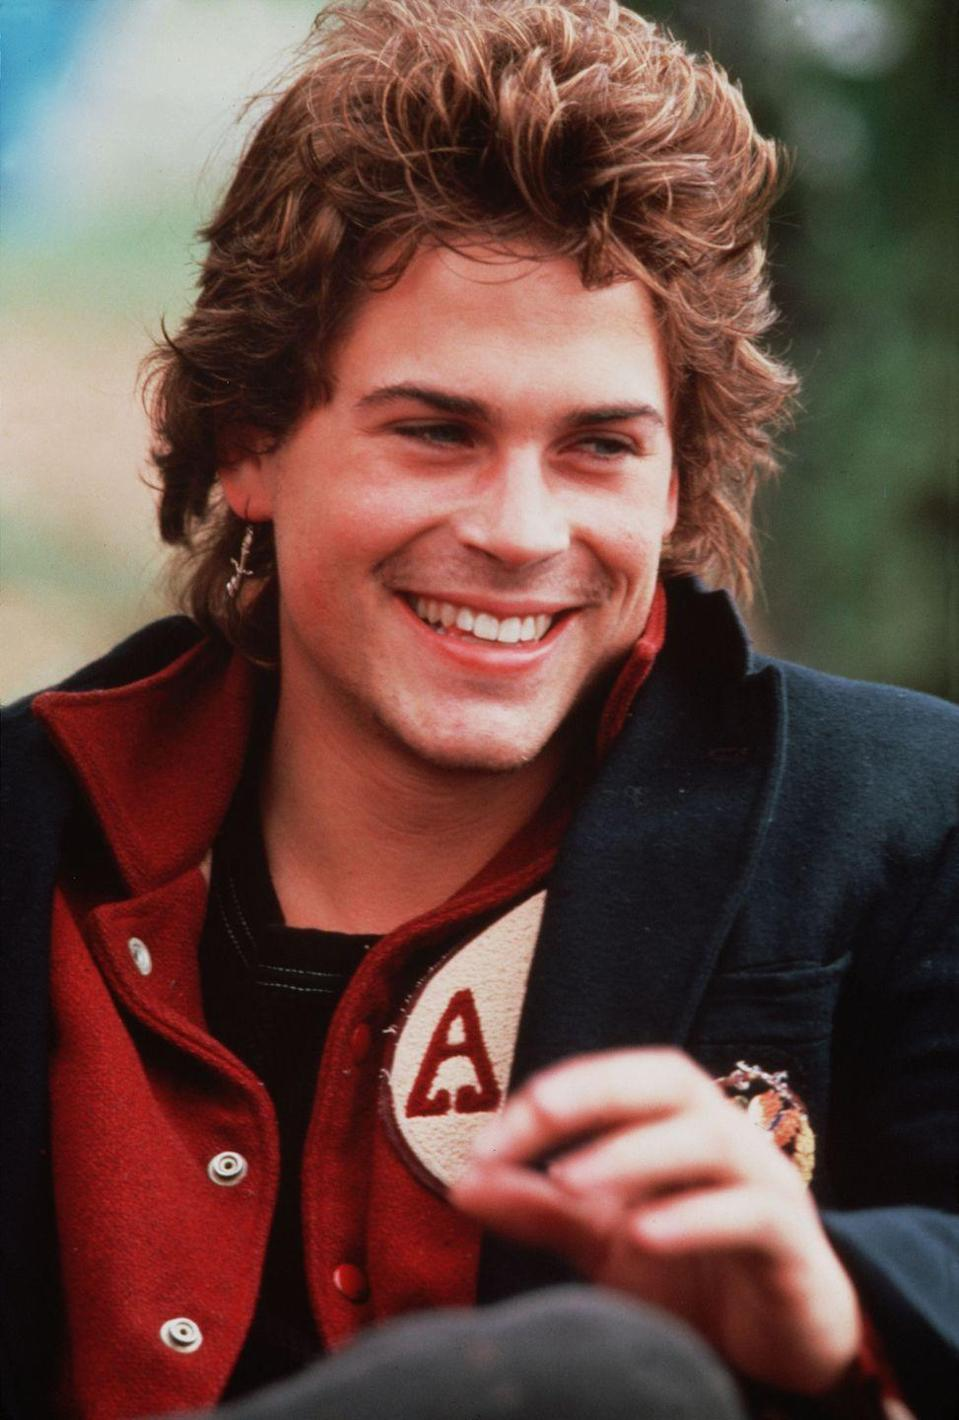 <p>Maybe Rob Lowe's character, Sodapop Curtis, was your favorite in <em>The Outsiders</em>, or you low-key fell in love with his severely dysfunctional character, Billy Hicks, in <em>St. Elmo's Fire</em>. Either way, no judgment here.</p>